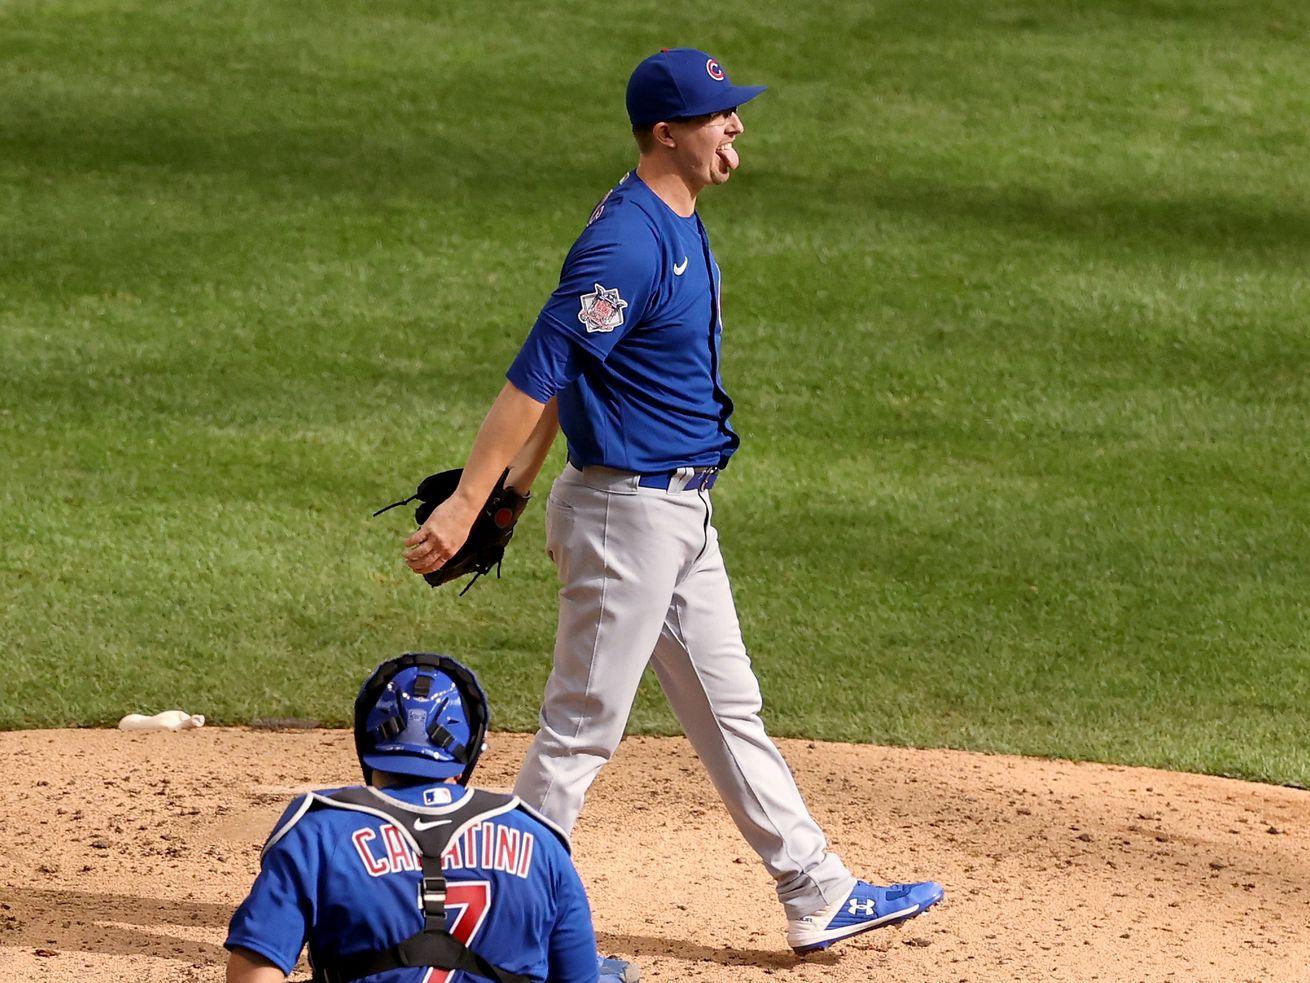 Cubs' Alec Mills celebrates no-hitter with dinner from one of Chicago's iconic pizza joints